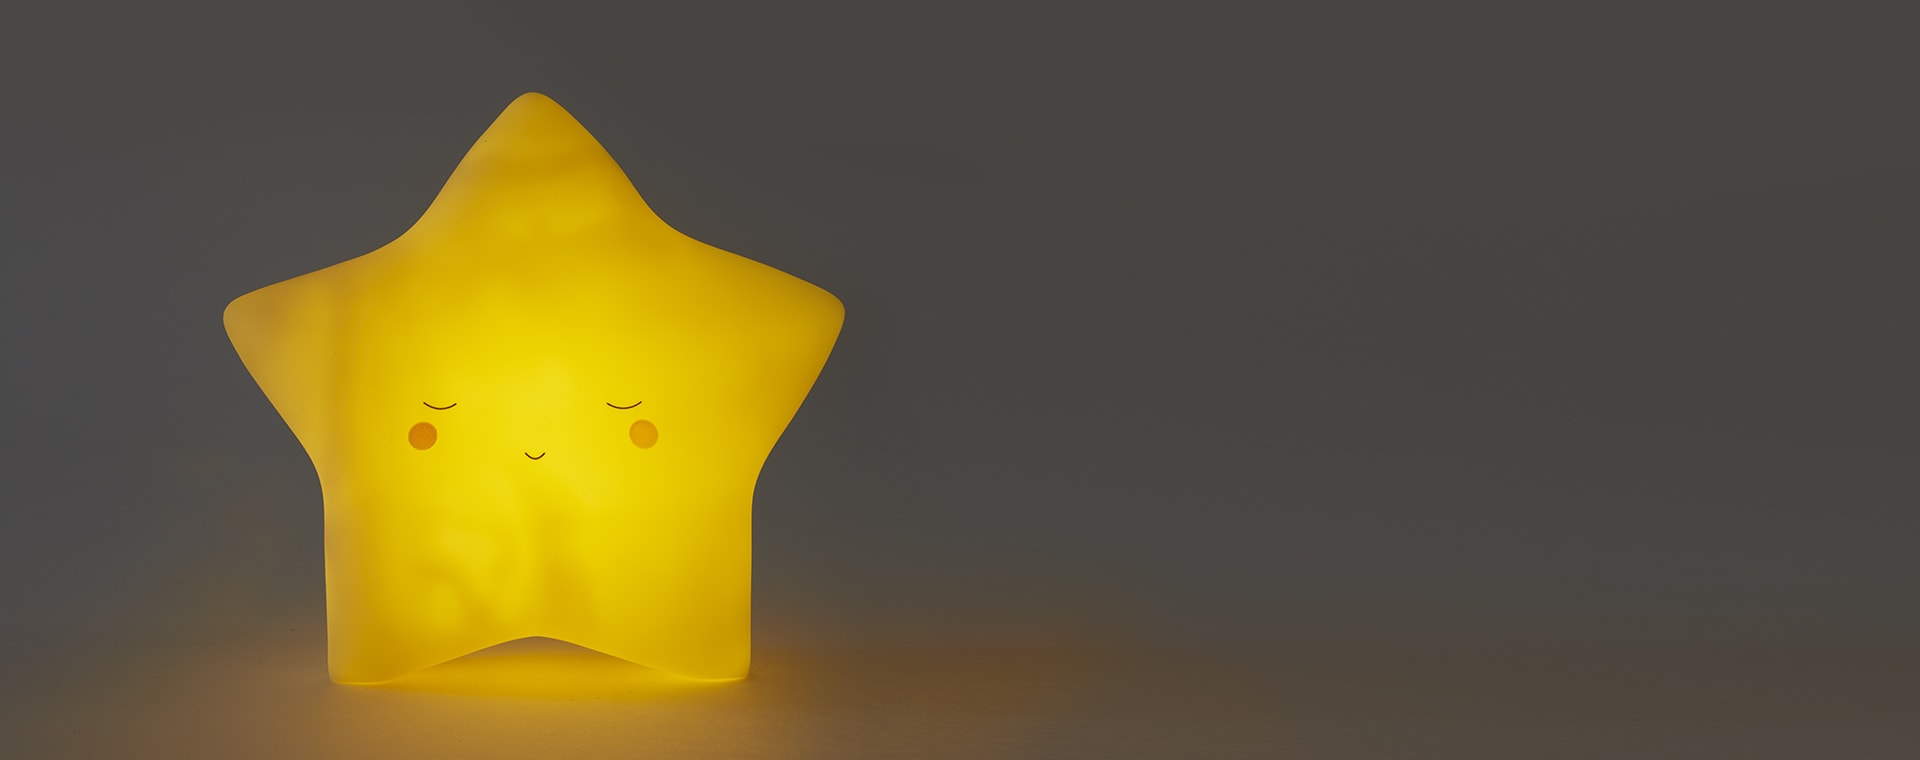 Yellow Lello Star Little Wall Tap Light